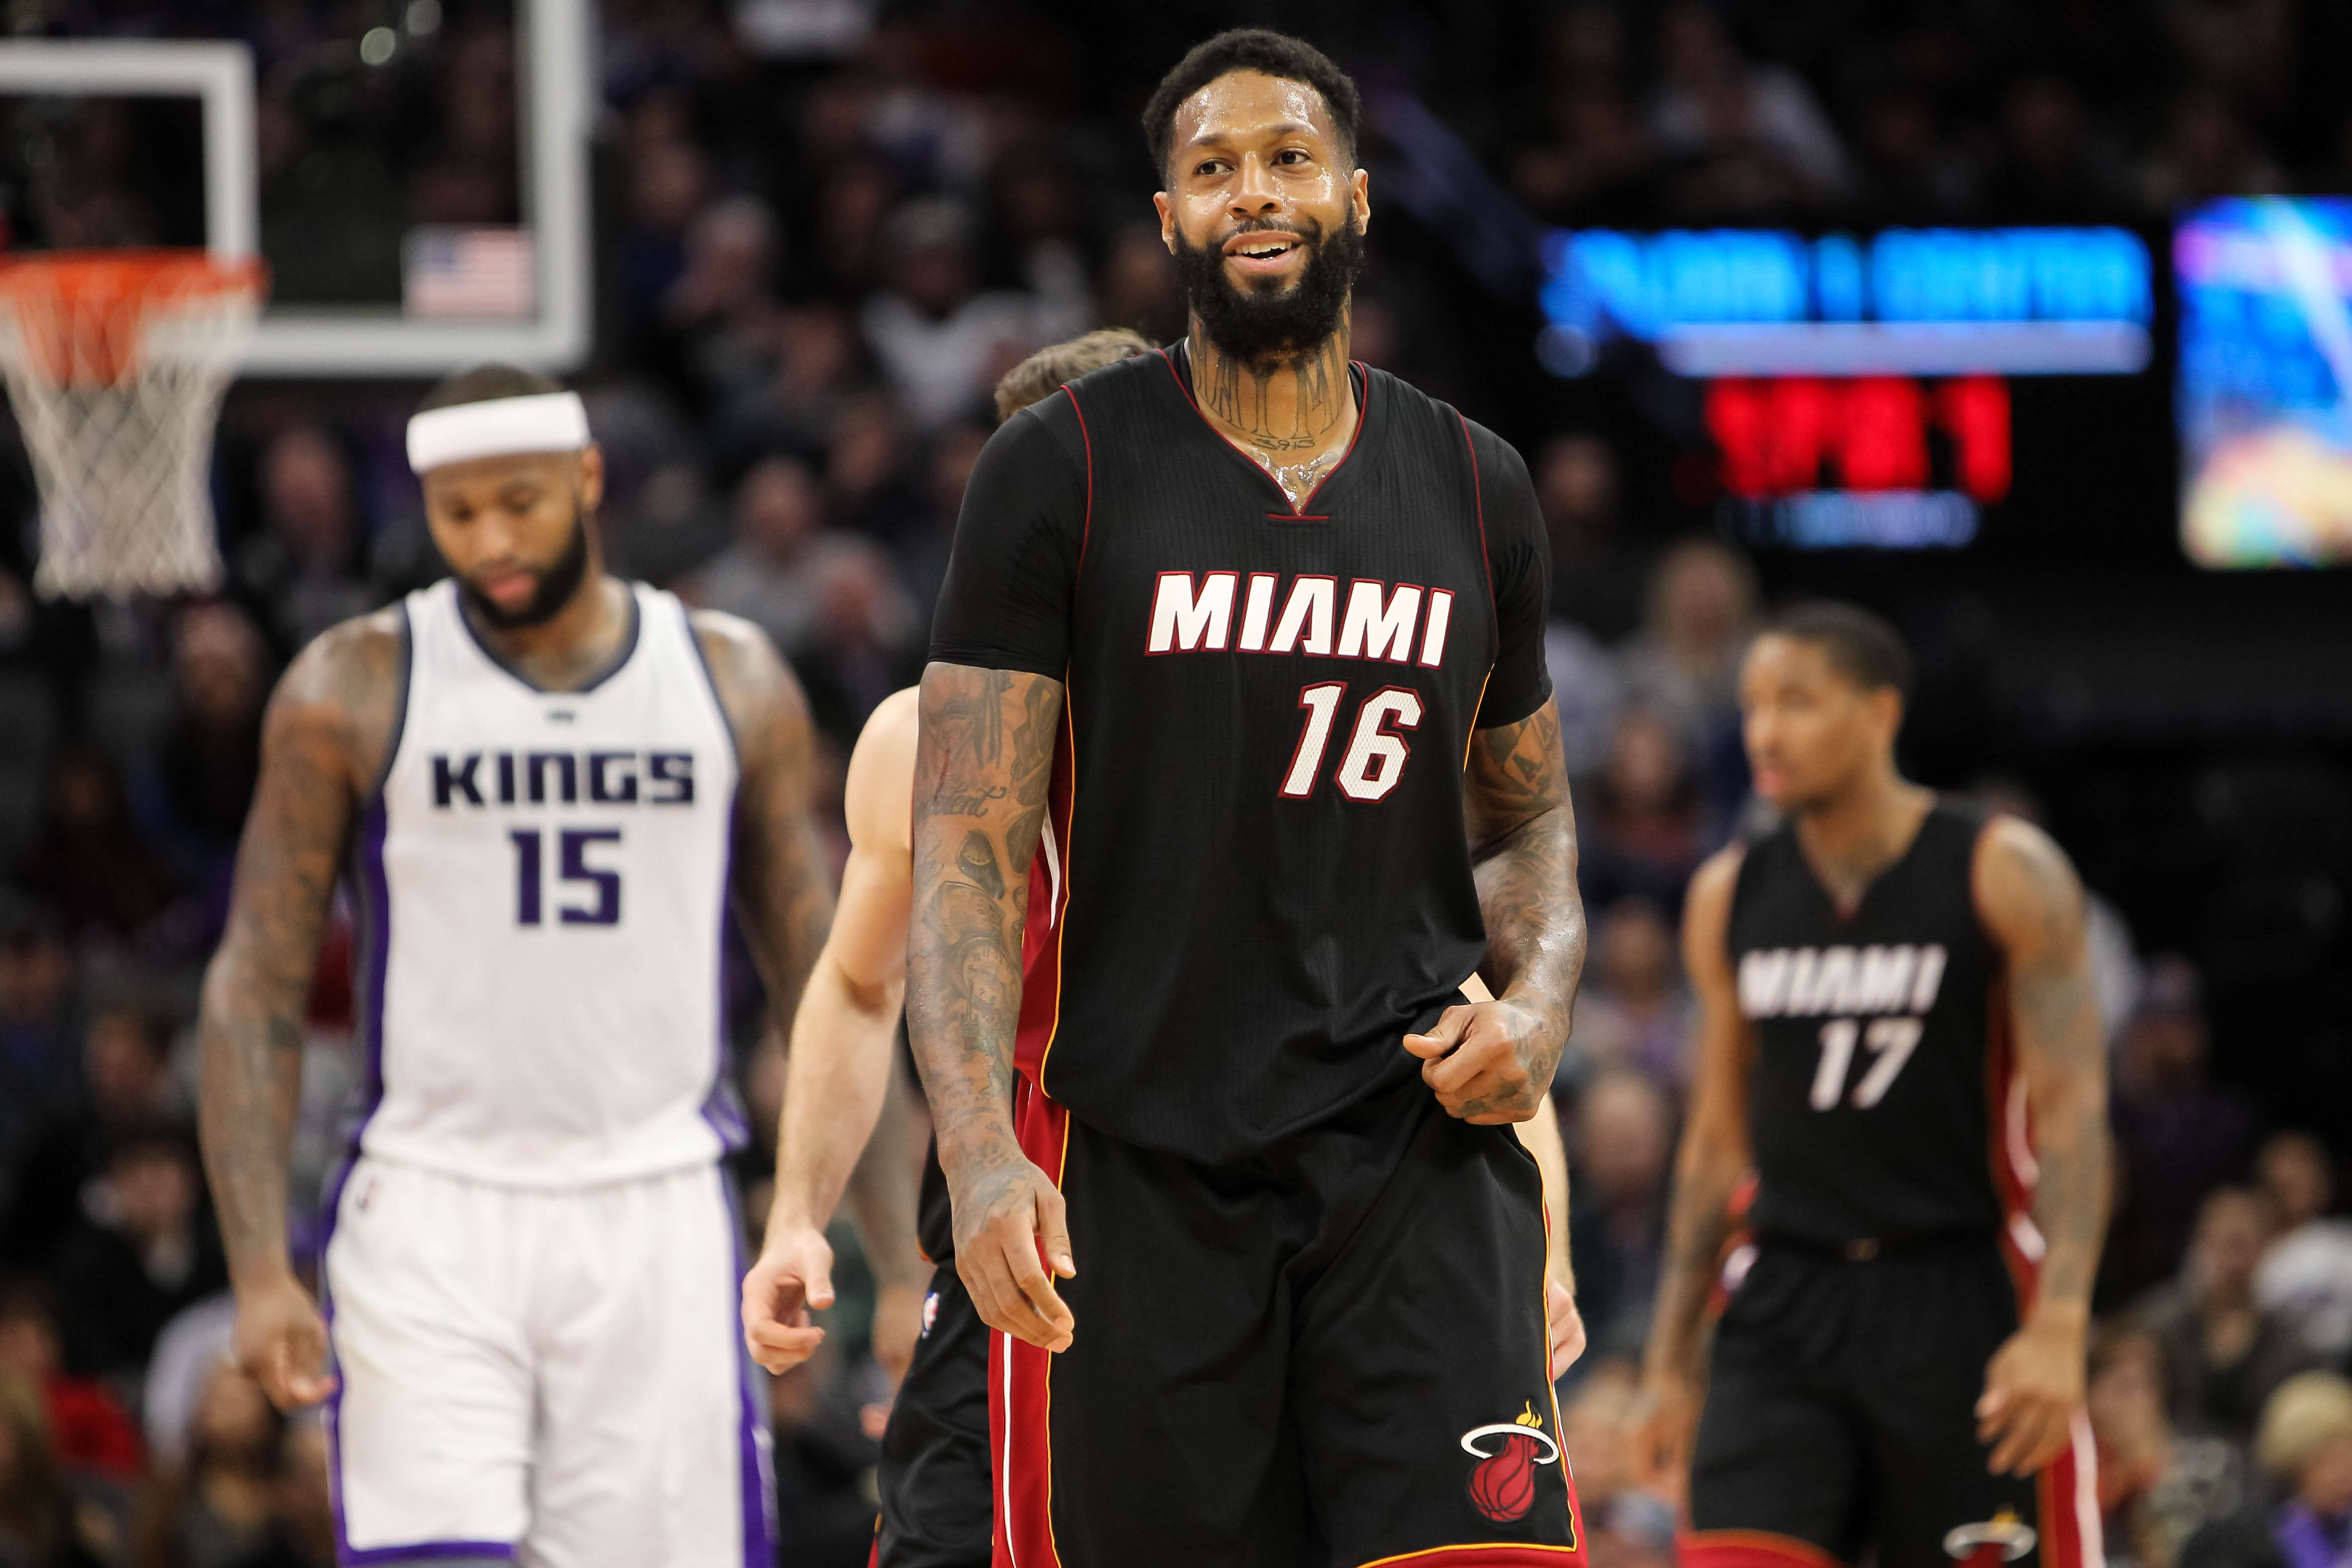 Miami Heat forward James Johnson (16) is in today's DraftKings daily picks. Mandatory Credit: Sergio Estrada-USA TODAY Sports